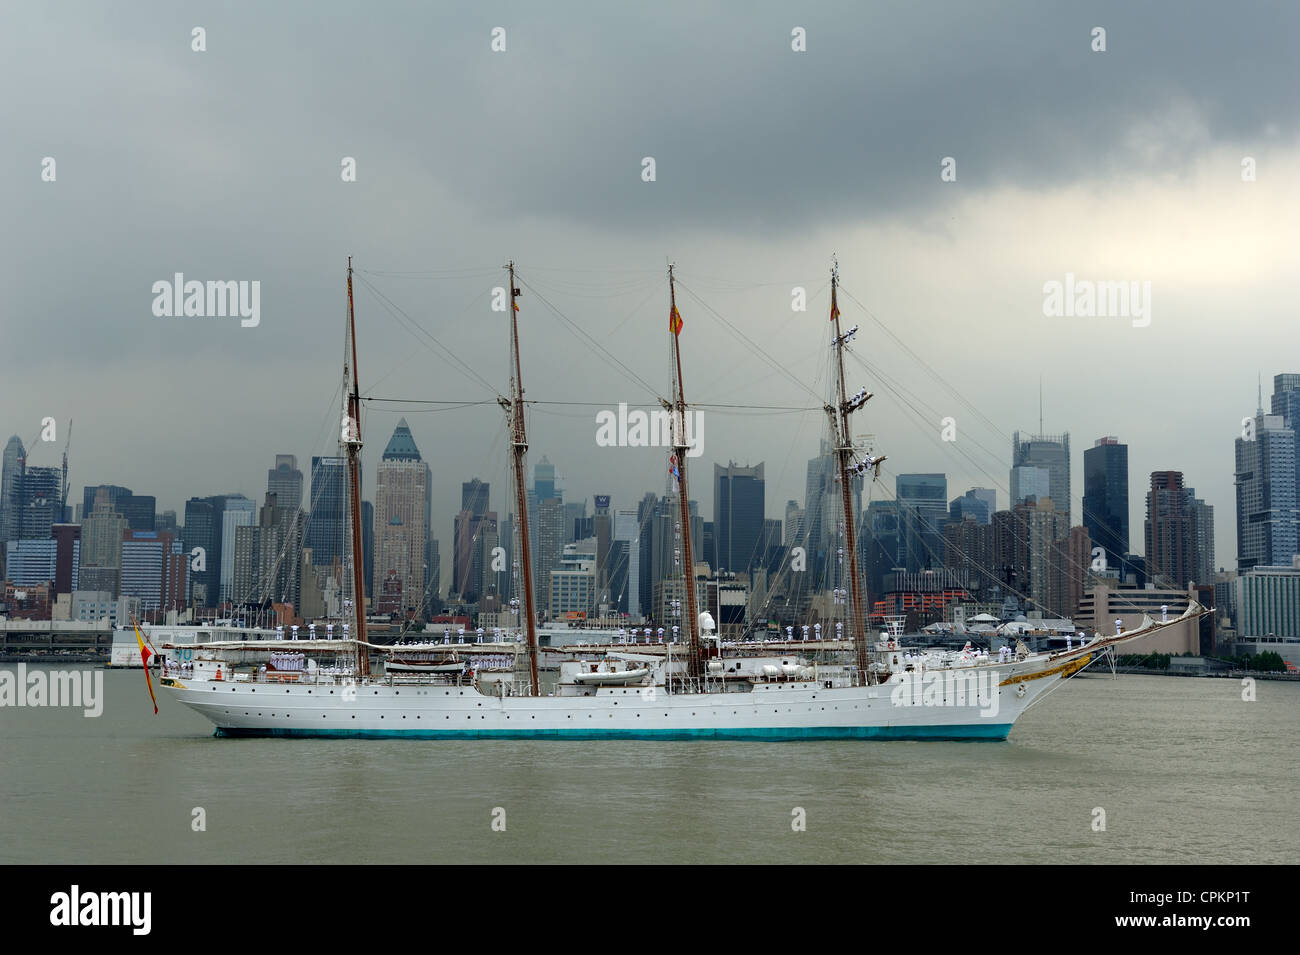 Juan Sebastian de Elcano, a training ship for the Spanish Navy, participated in OpSail 2012 in New York City. - Stock Image